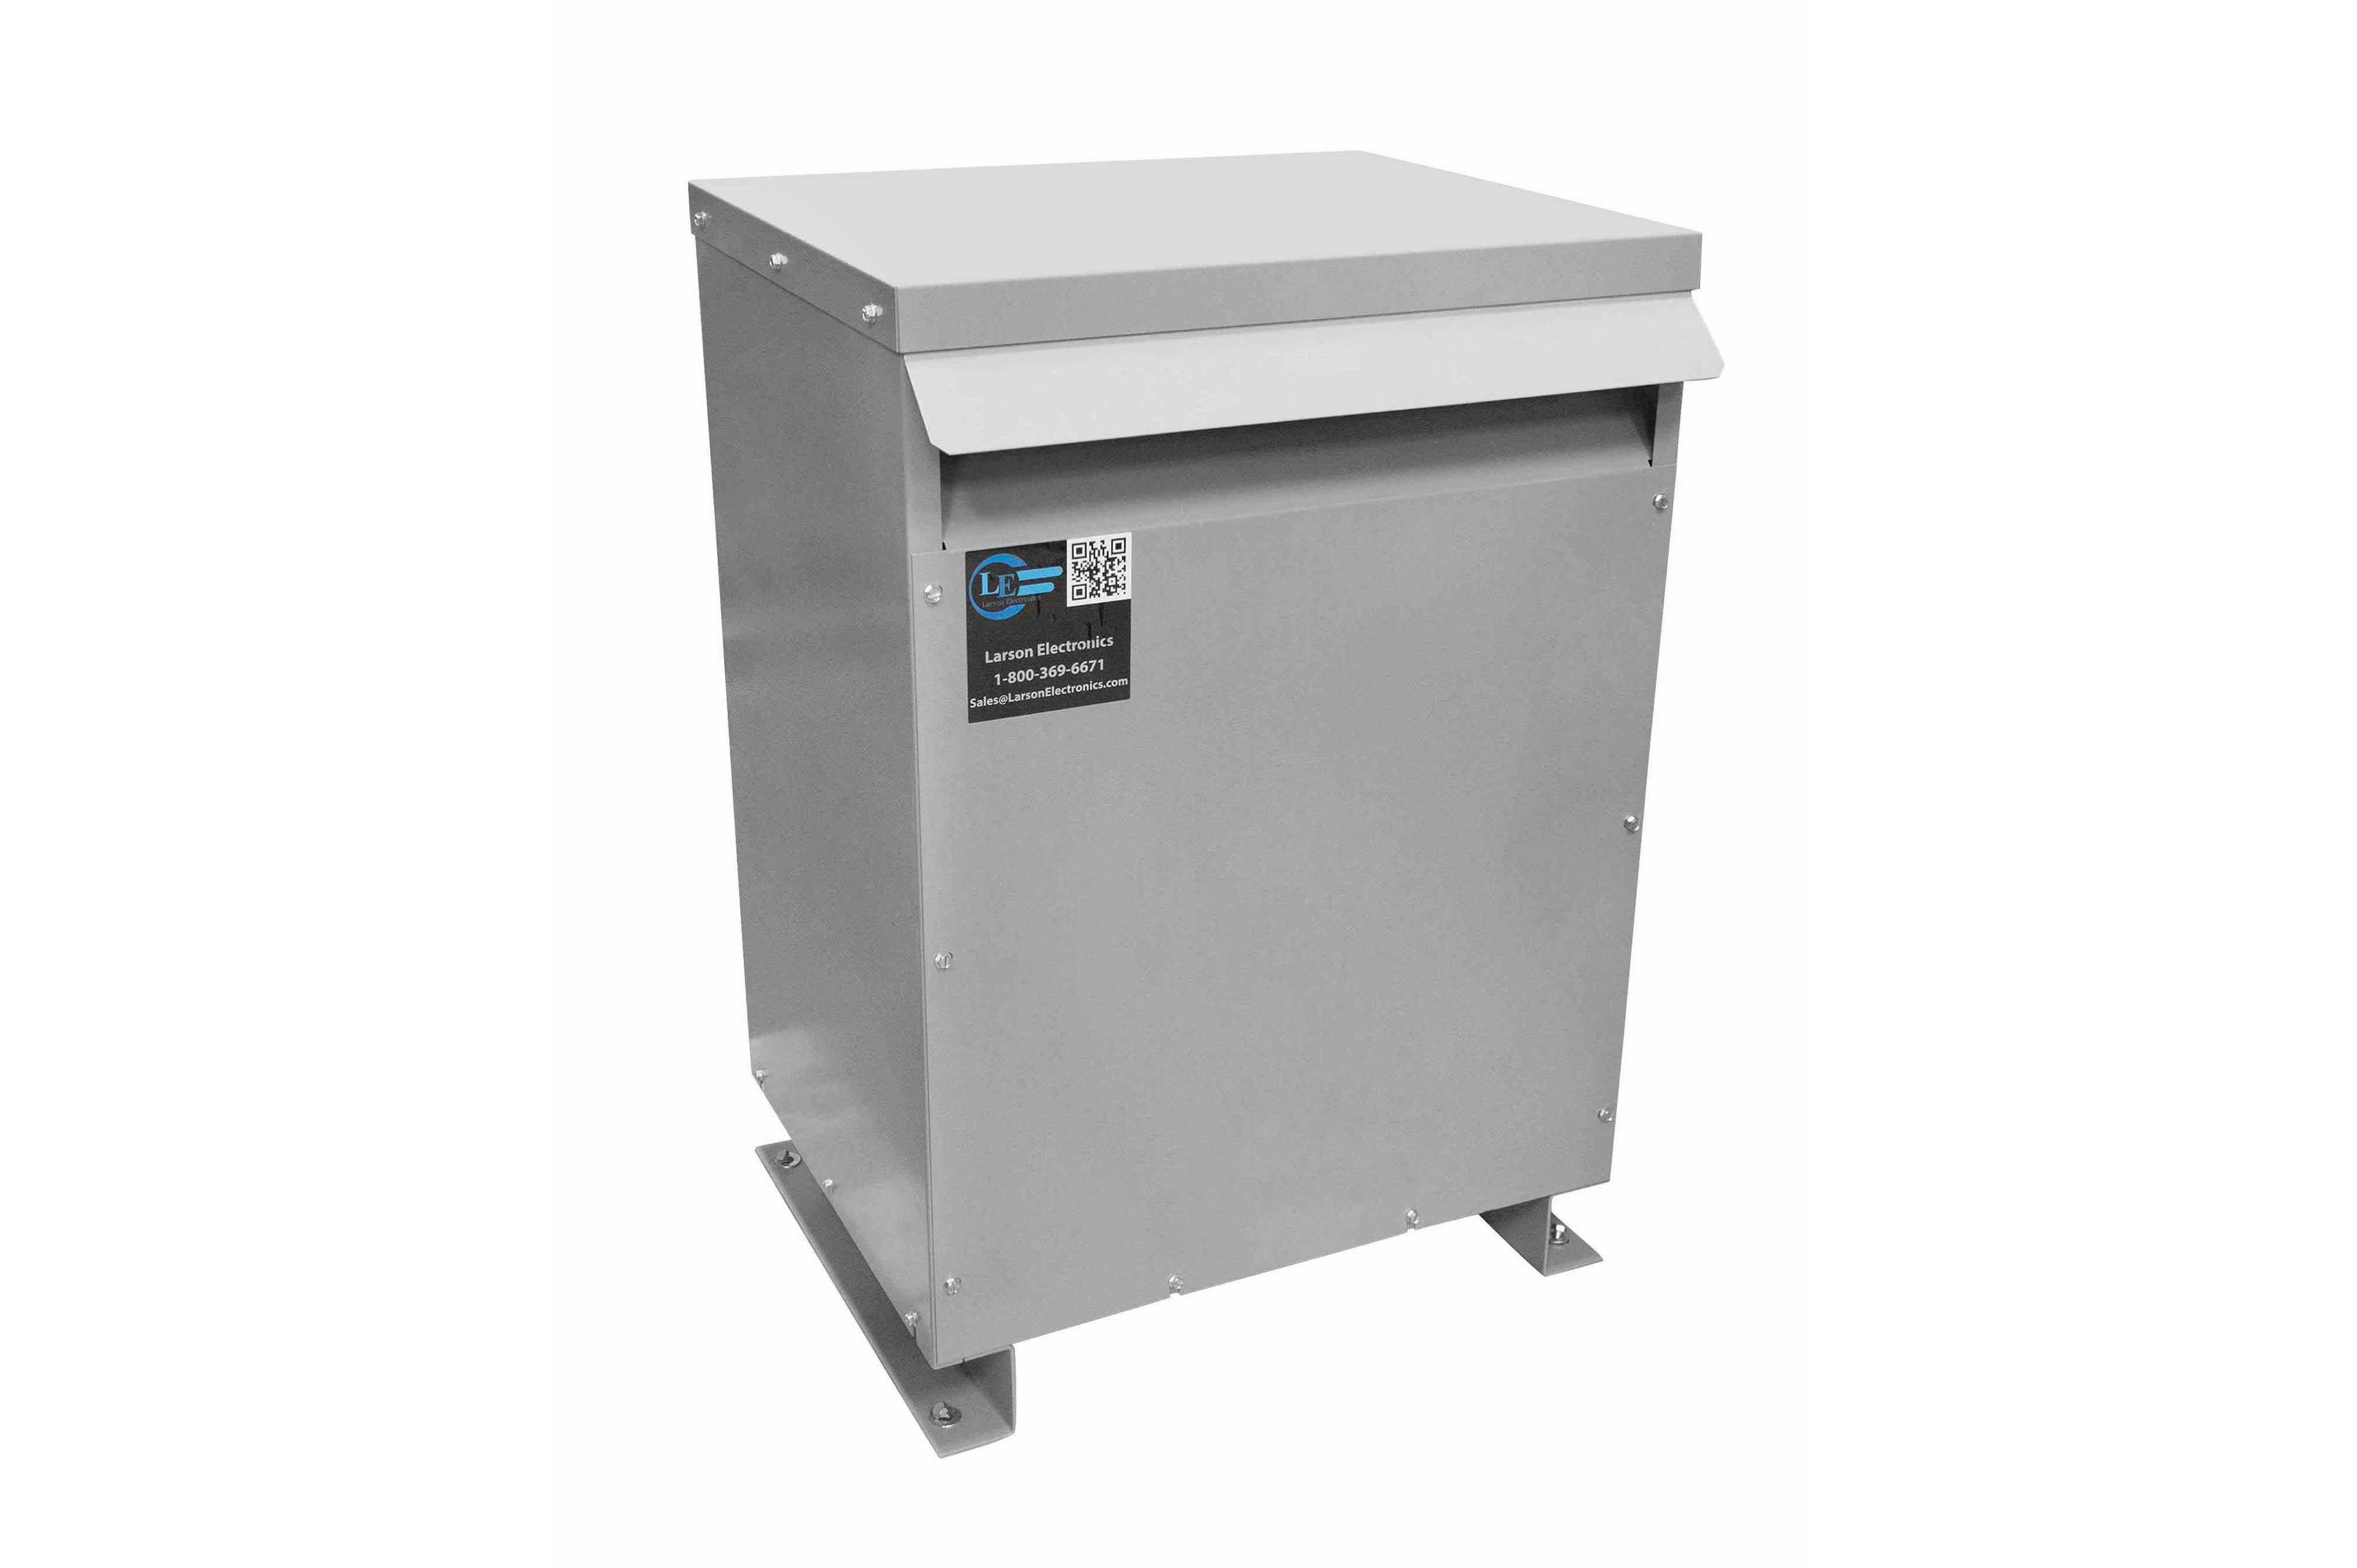 700 kVA 3PH DOE Transformer, 400V Delta Primary, 600Y/347 Wye-N Secondary, N3R, Ventilated, 60 Hz